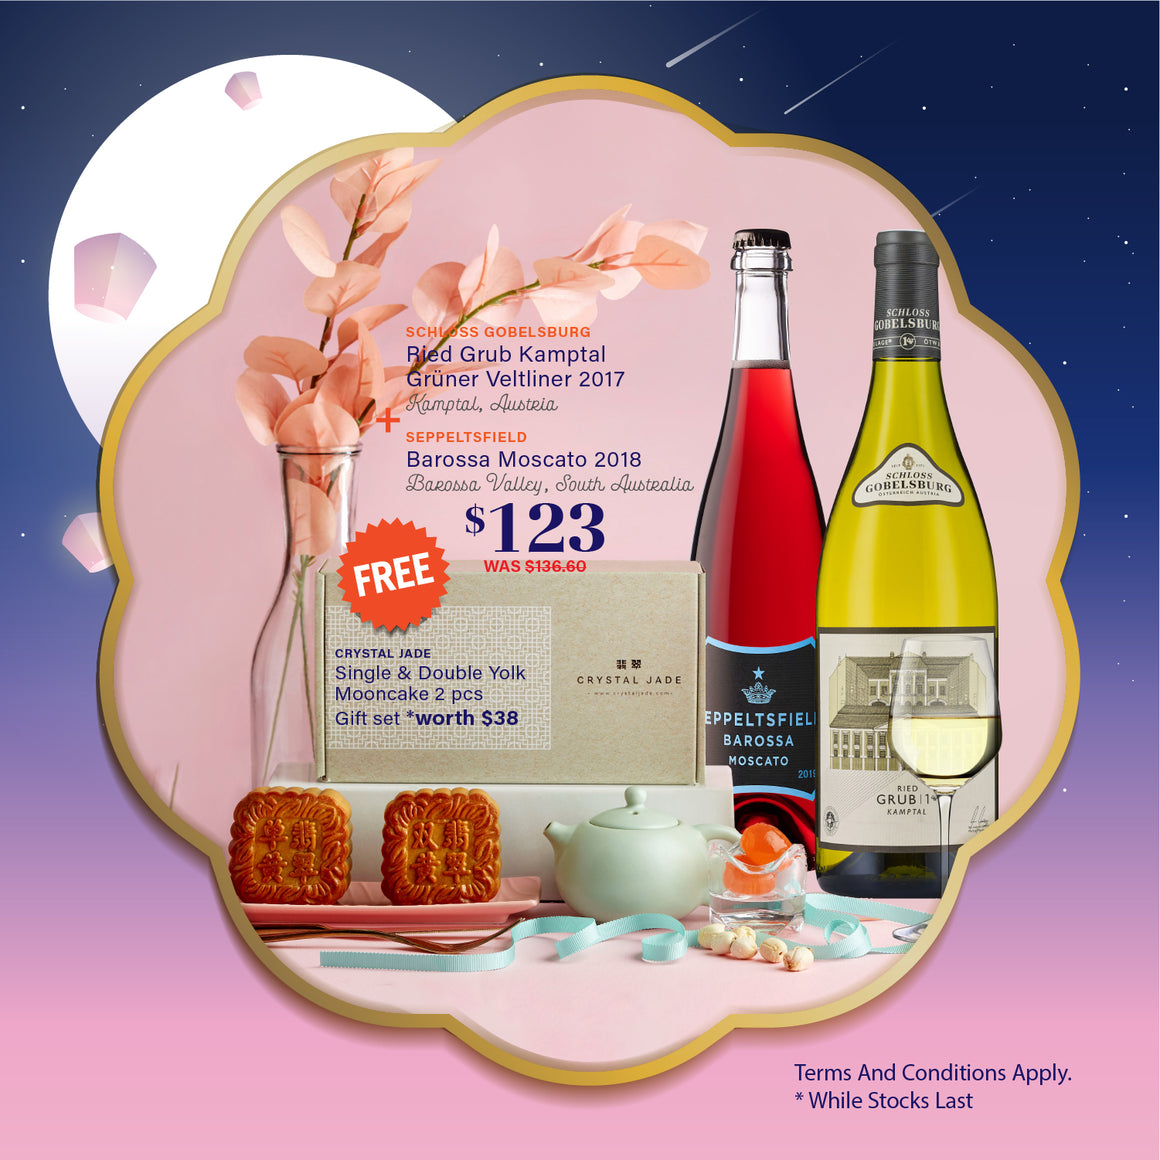 SEPPELTSFIELD BAROSSA MOSCATO 2018 & SCHLOSS GOBELSBURG RIED GRUB KAMPTAL GRUNER VELTINER 2017 - *FREE 1 X CRYSTAL JADE SINGLE & DOUBLE YORK MOONCAKE 2 PCS GIFT SET WORTH $38